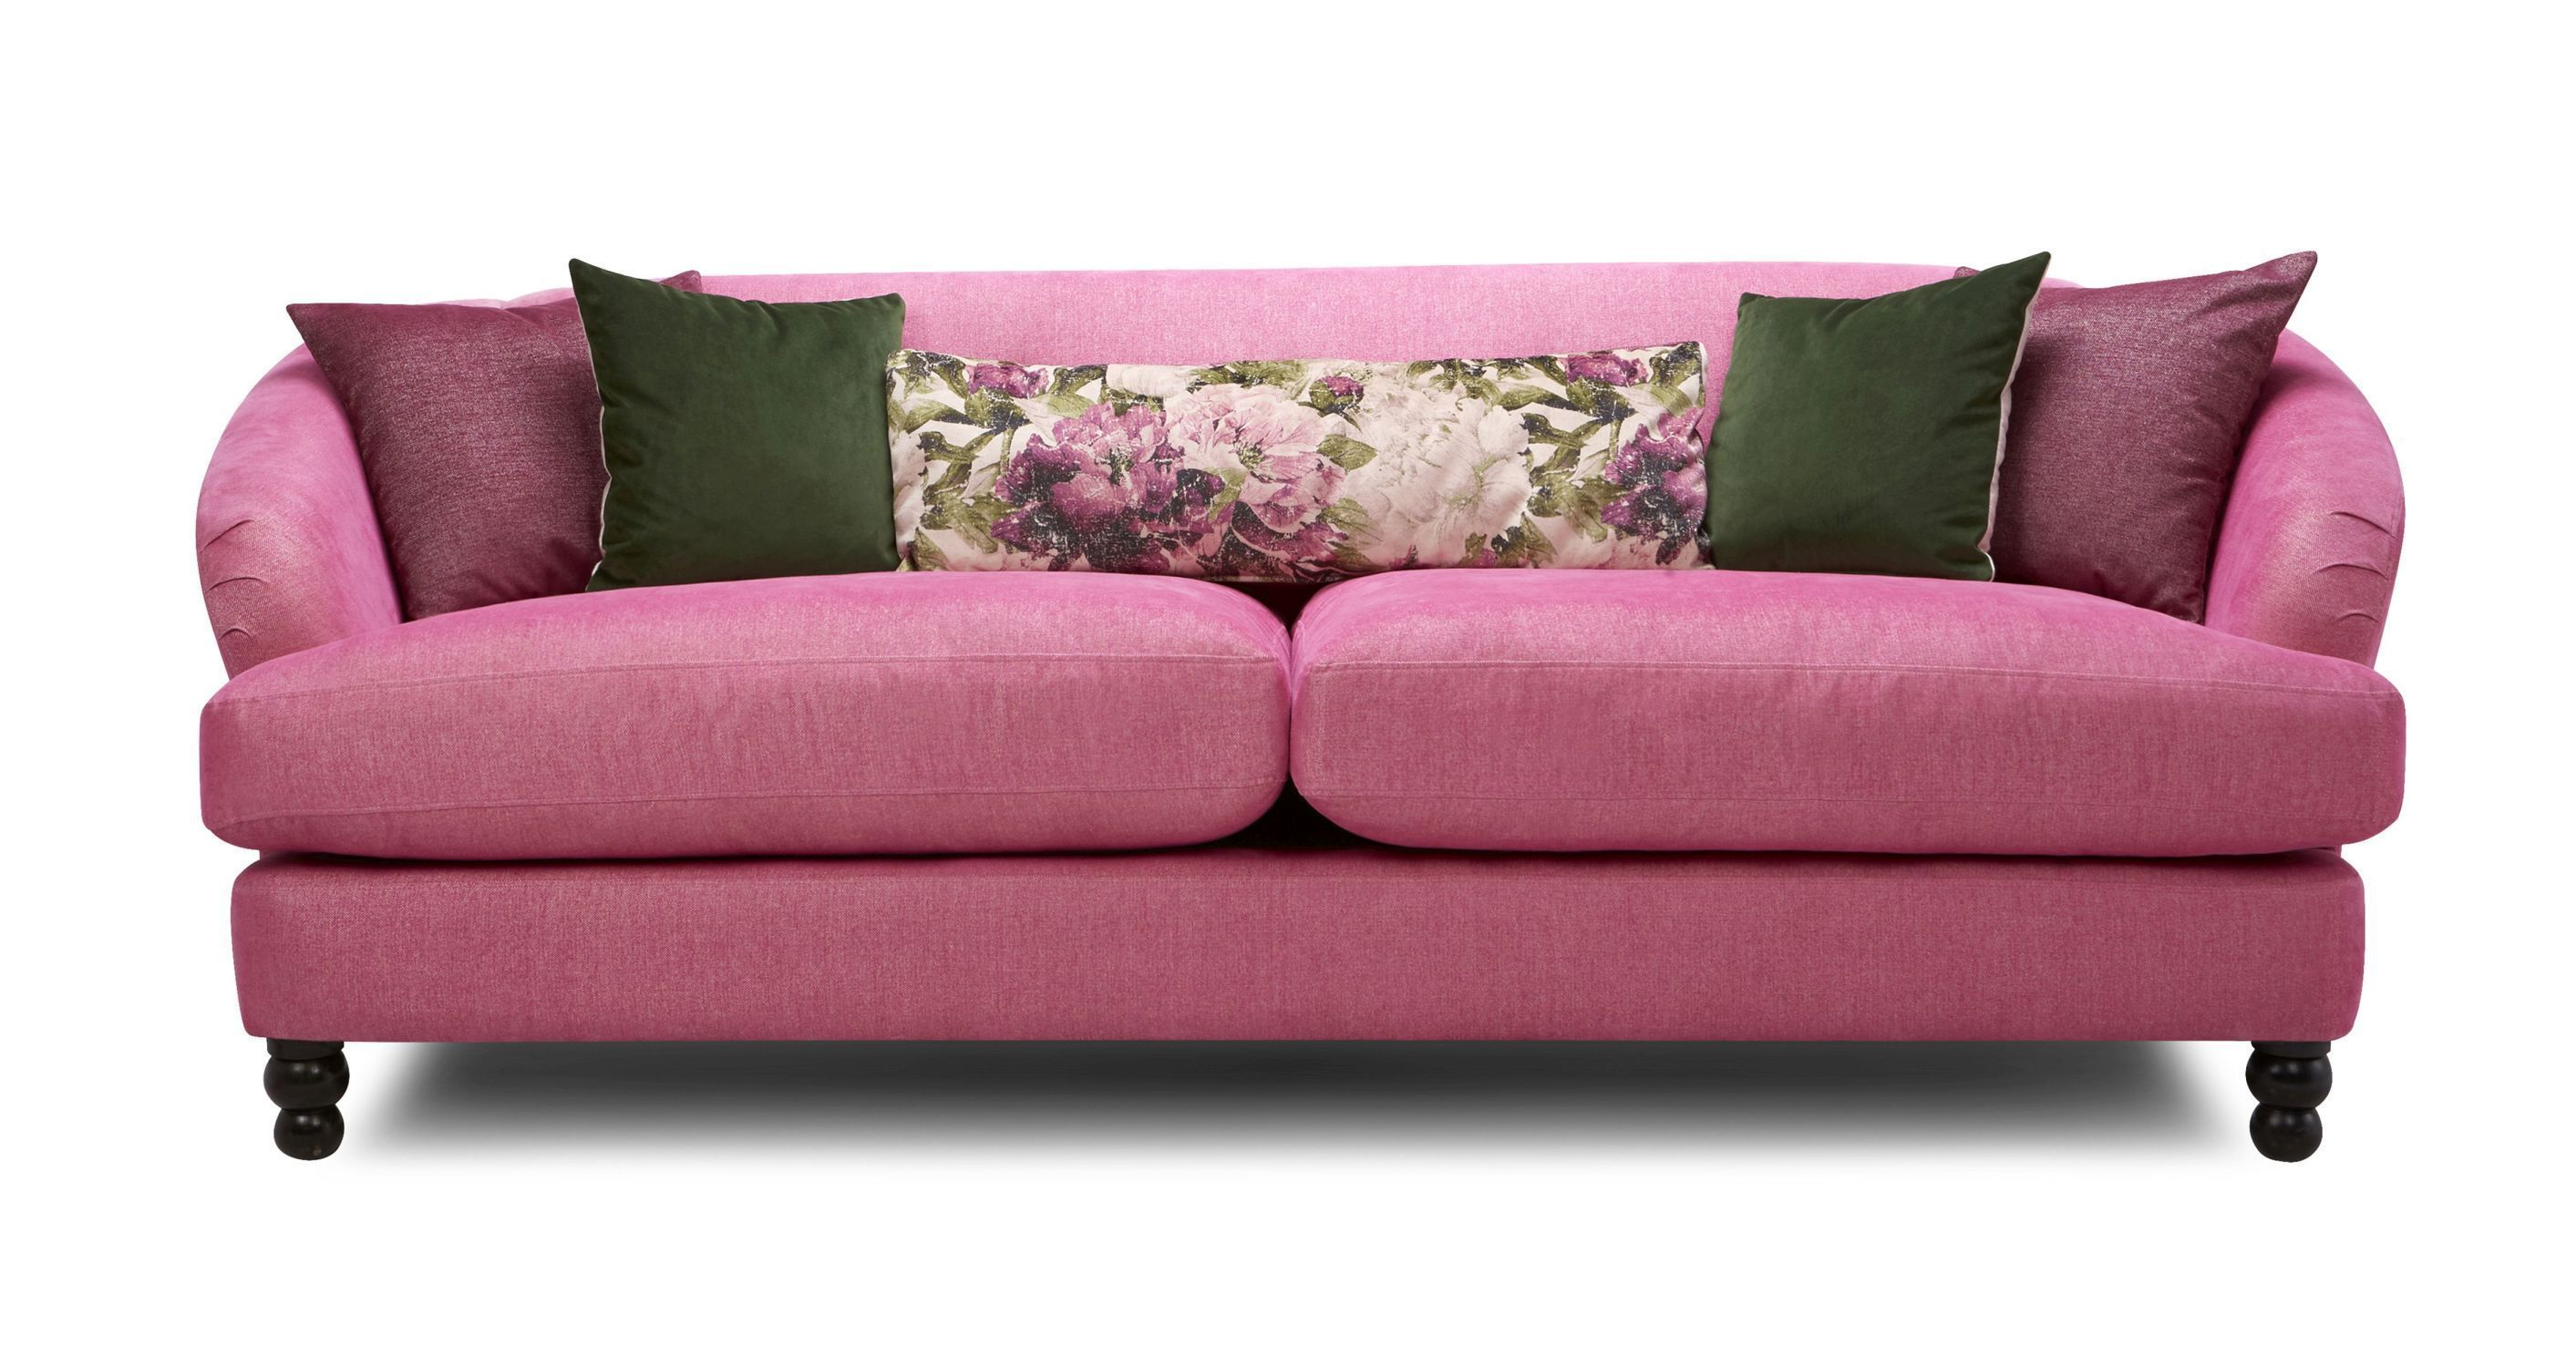 Fliss sofa, £1,998, DFS